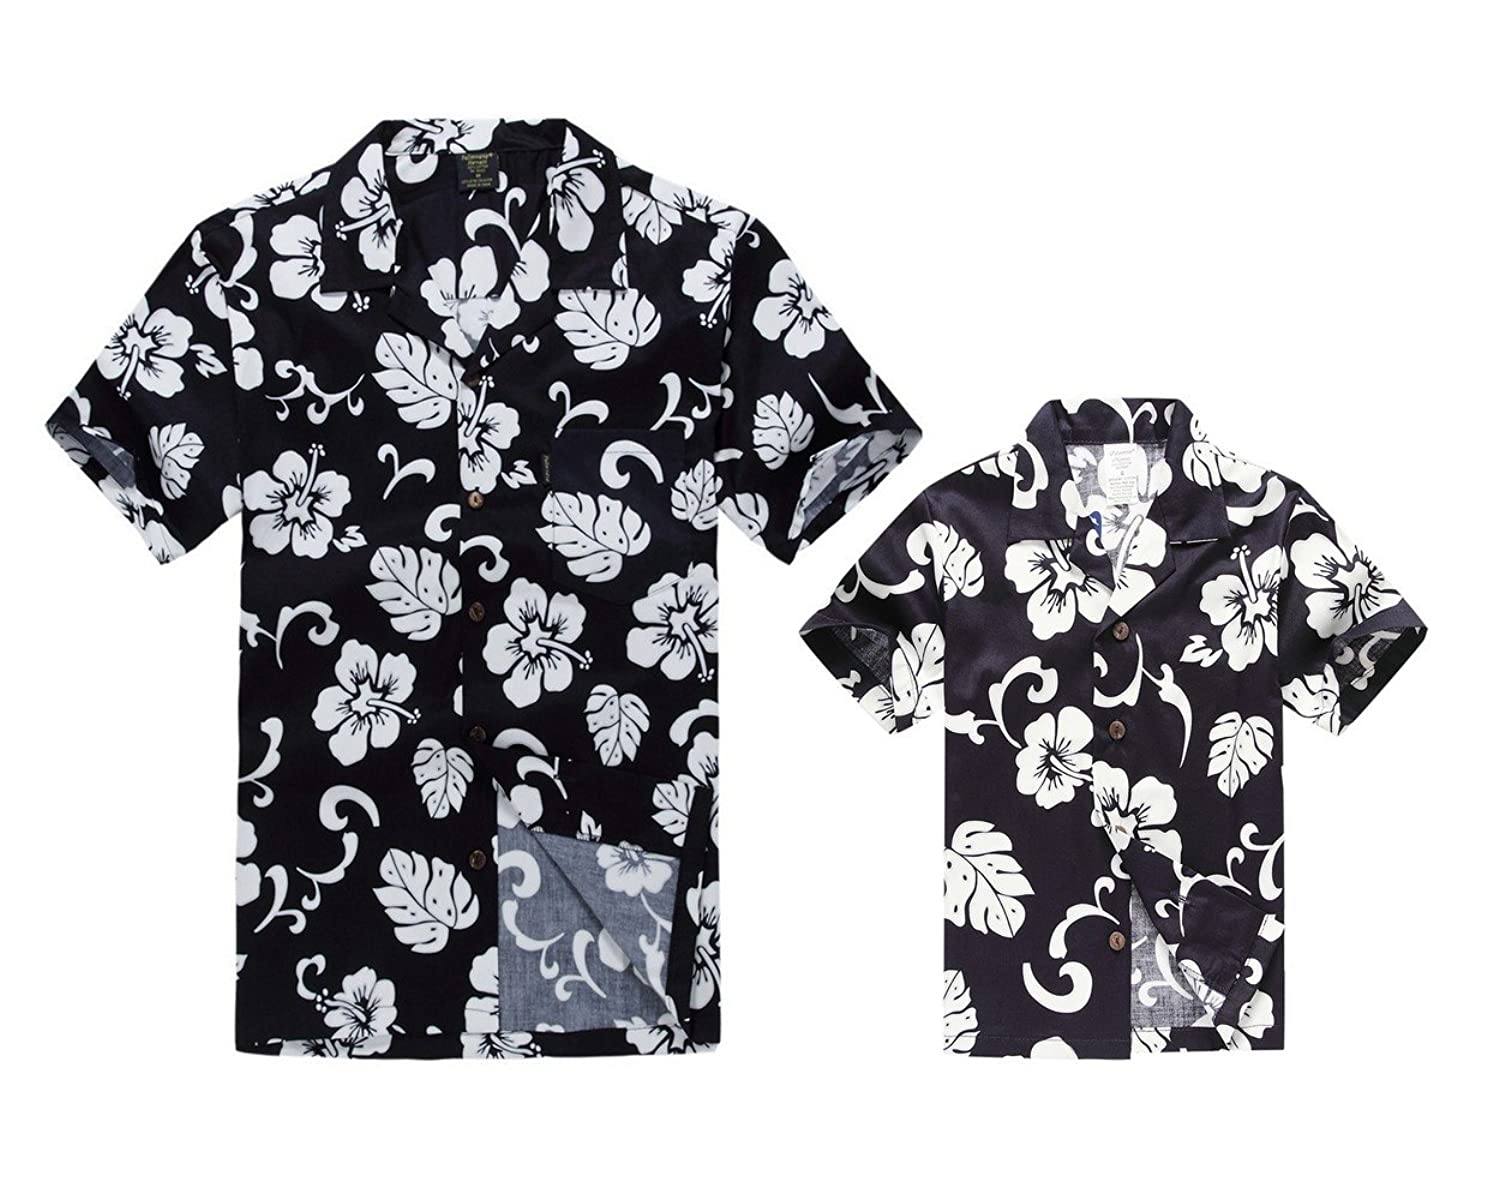 d964e1b9 Matching Father Son Hawaiian Luau Outfit Men Shirt Boy Shirt Navy Hibiscus:  Amazon.co.uk: Clothing